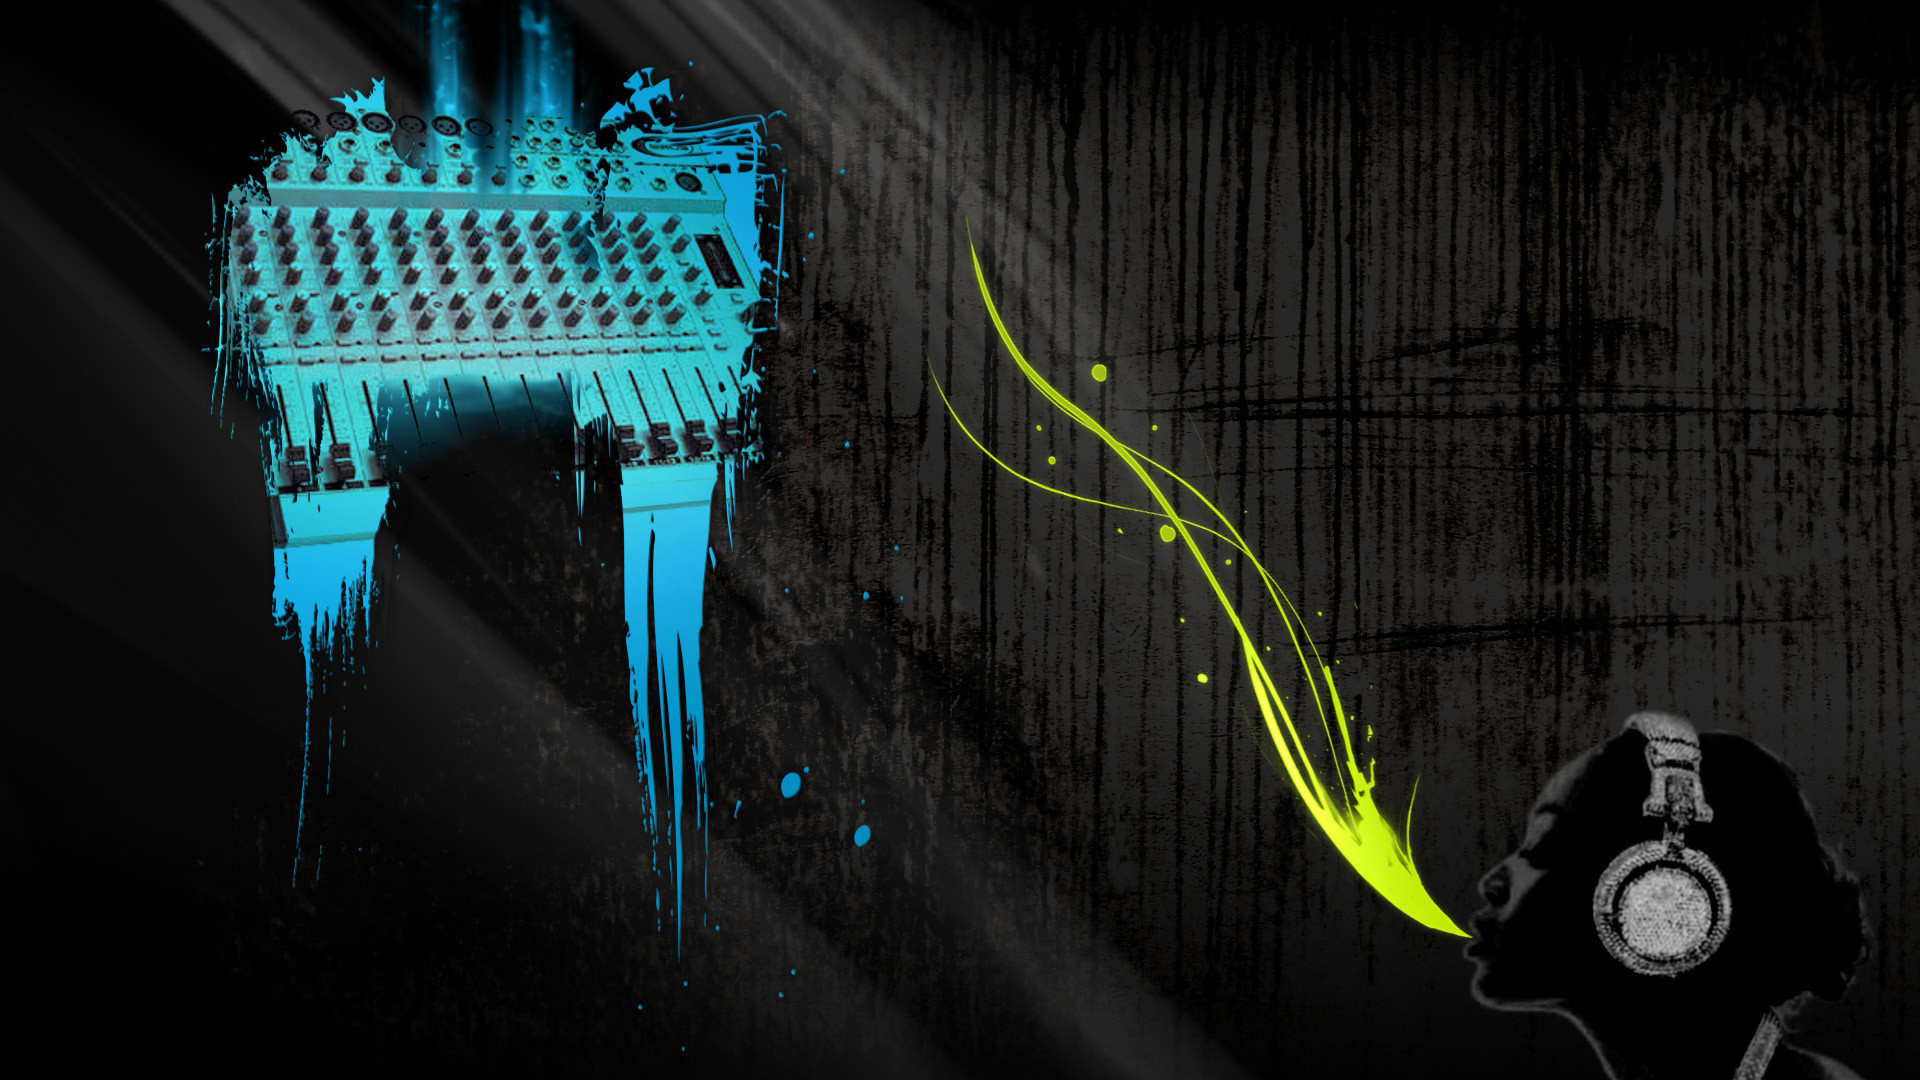 Techno Music Wallpaper 74 Images